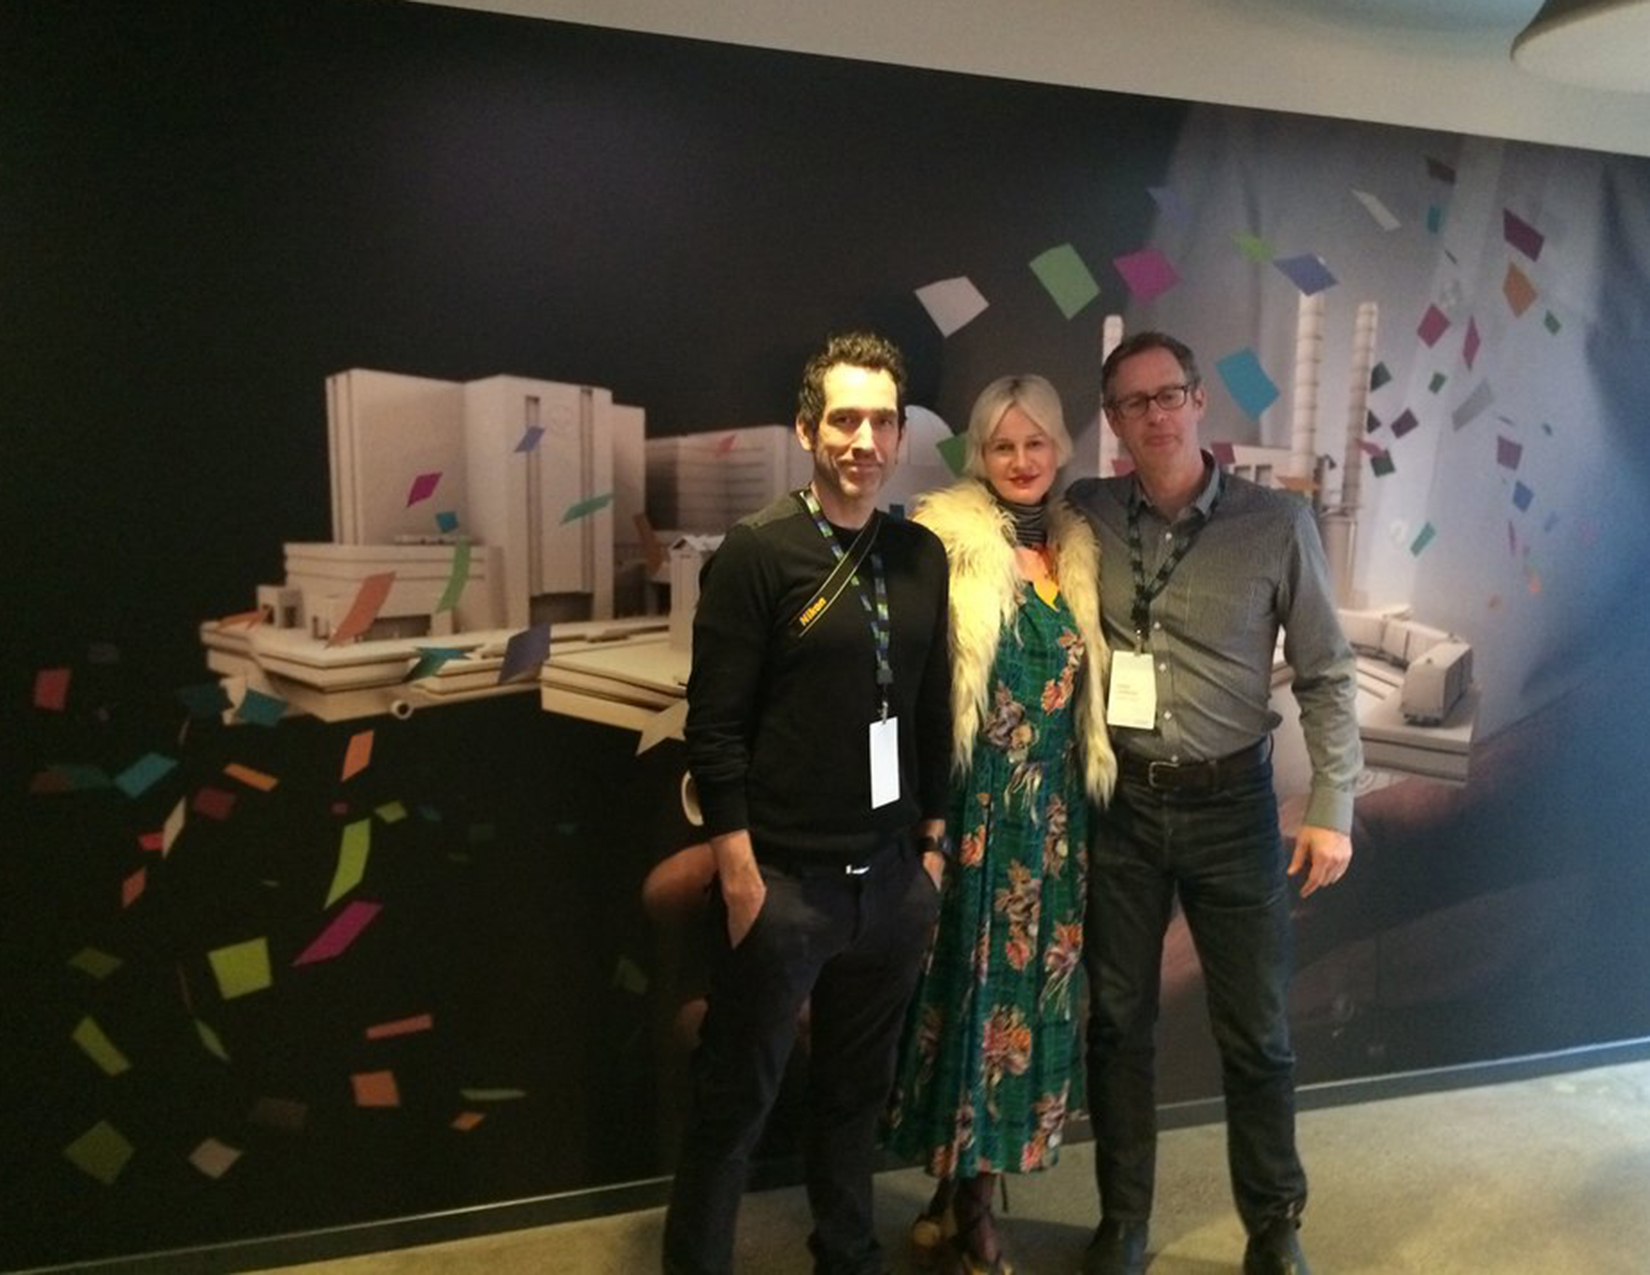 Kevin, Marion and Todd in front of one of the larger posters